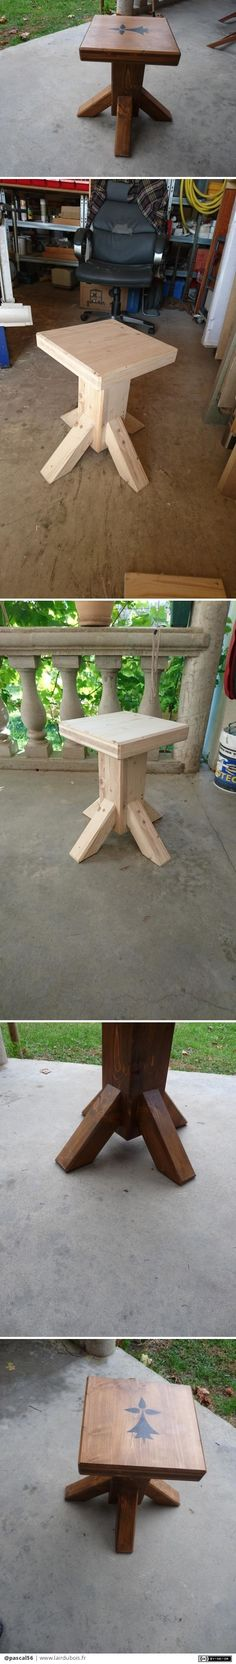 Nice little outside table to make